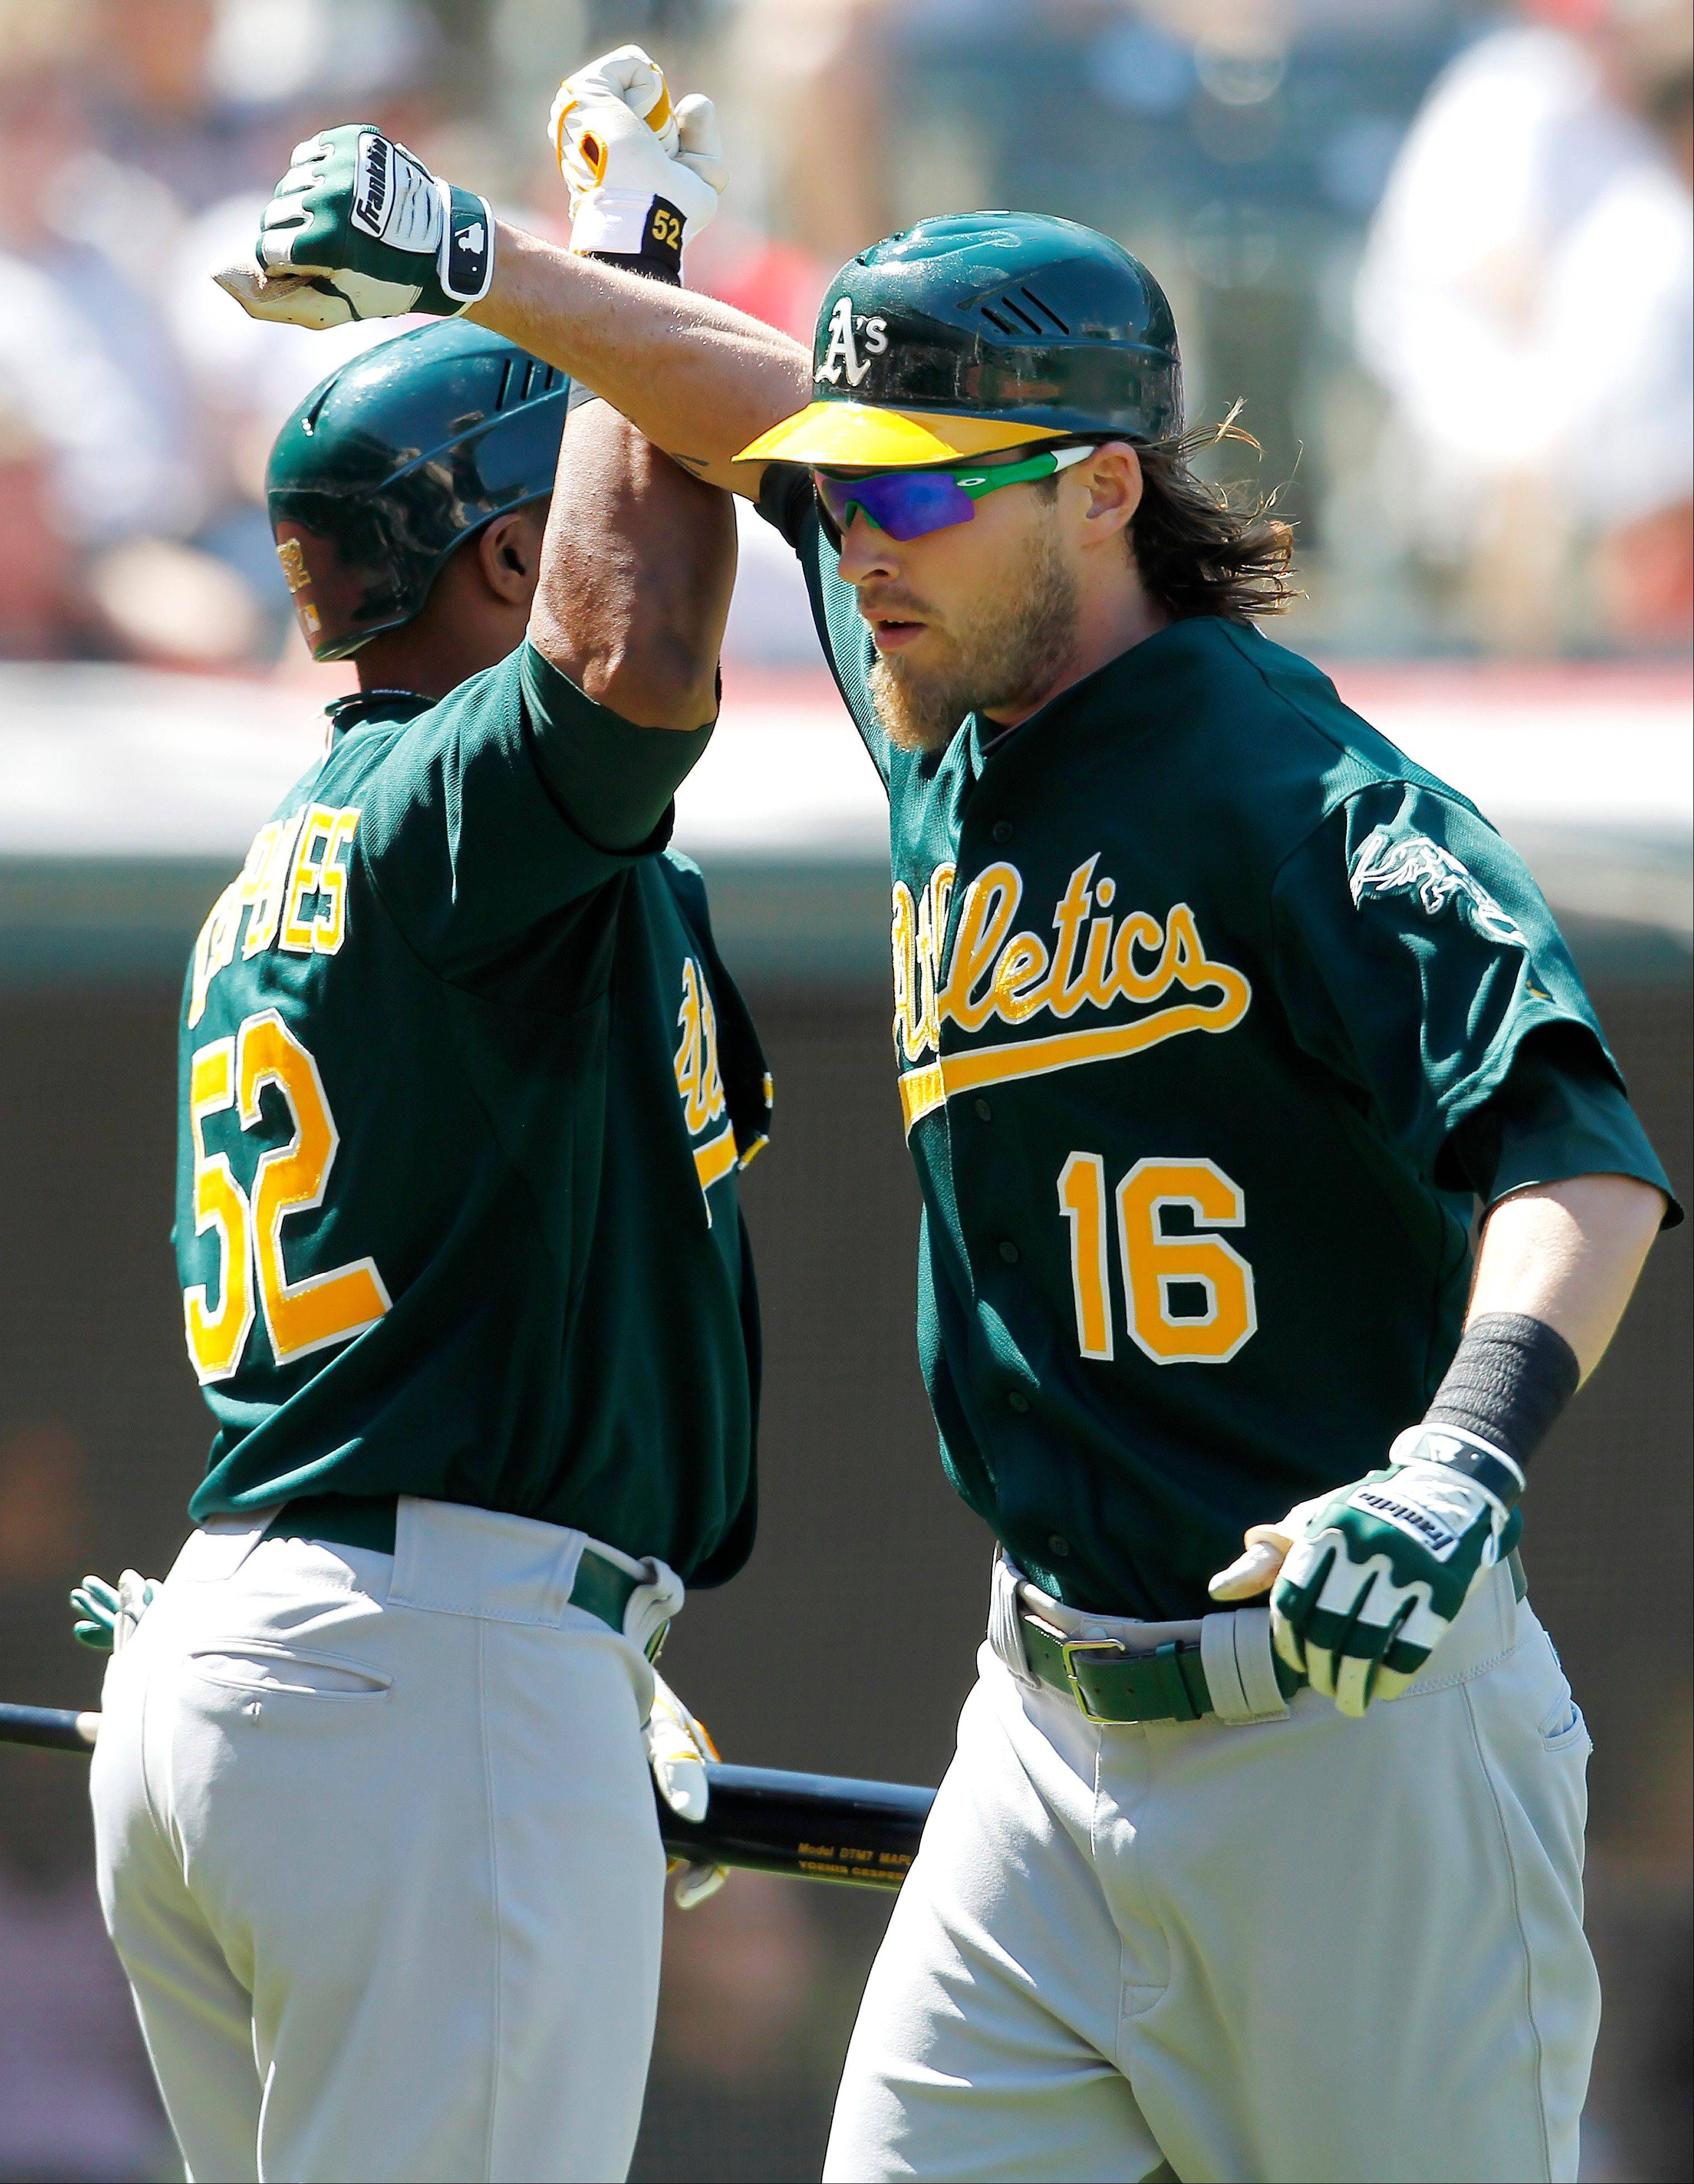 Oakland�s Josh Reddick, right, is greeted by Yoenis Cespedes after hitting a two-run home run off the Indians� Justin Masterson on Thursday in Cleveland.